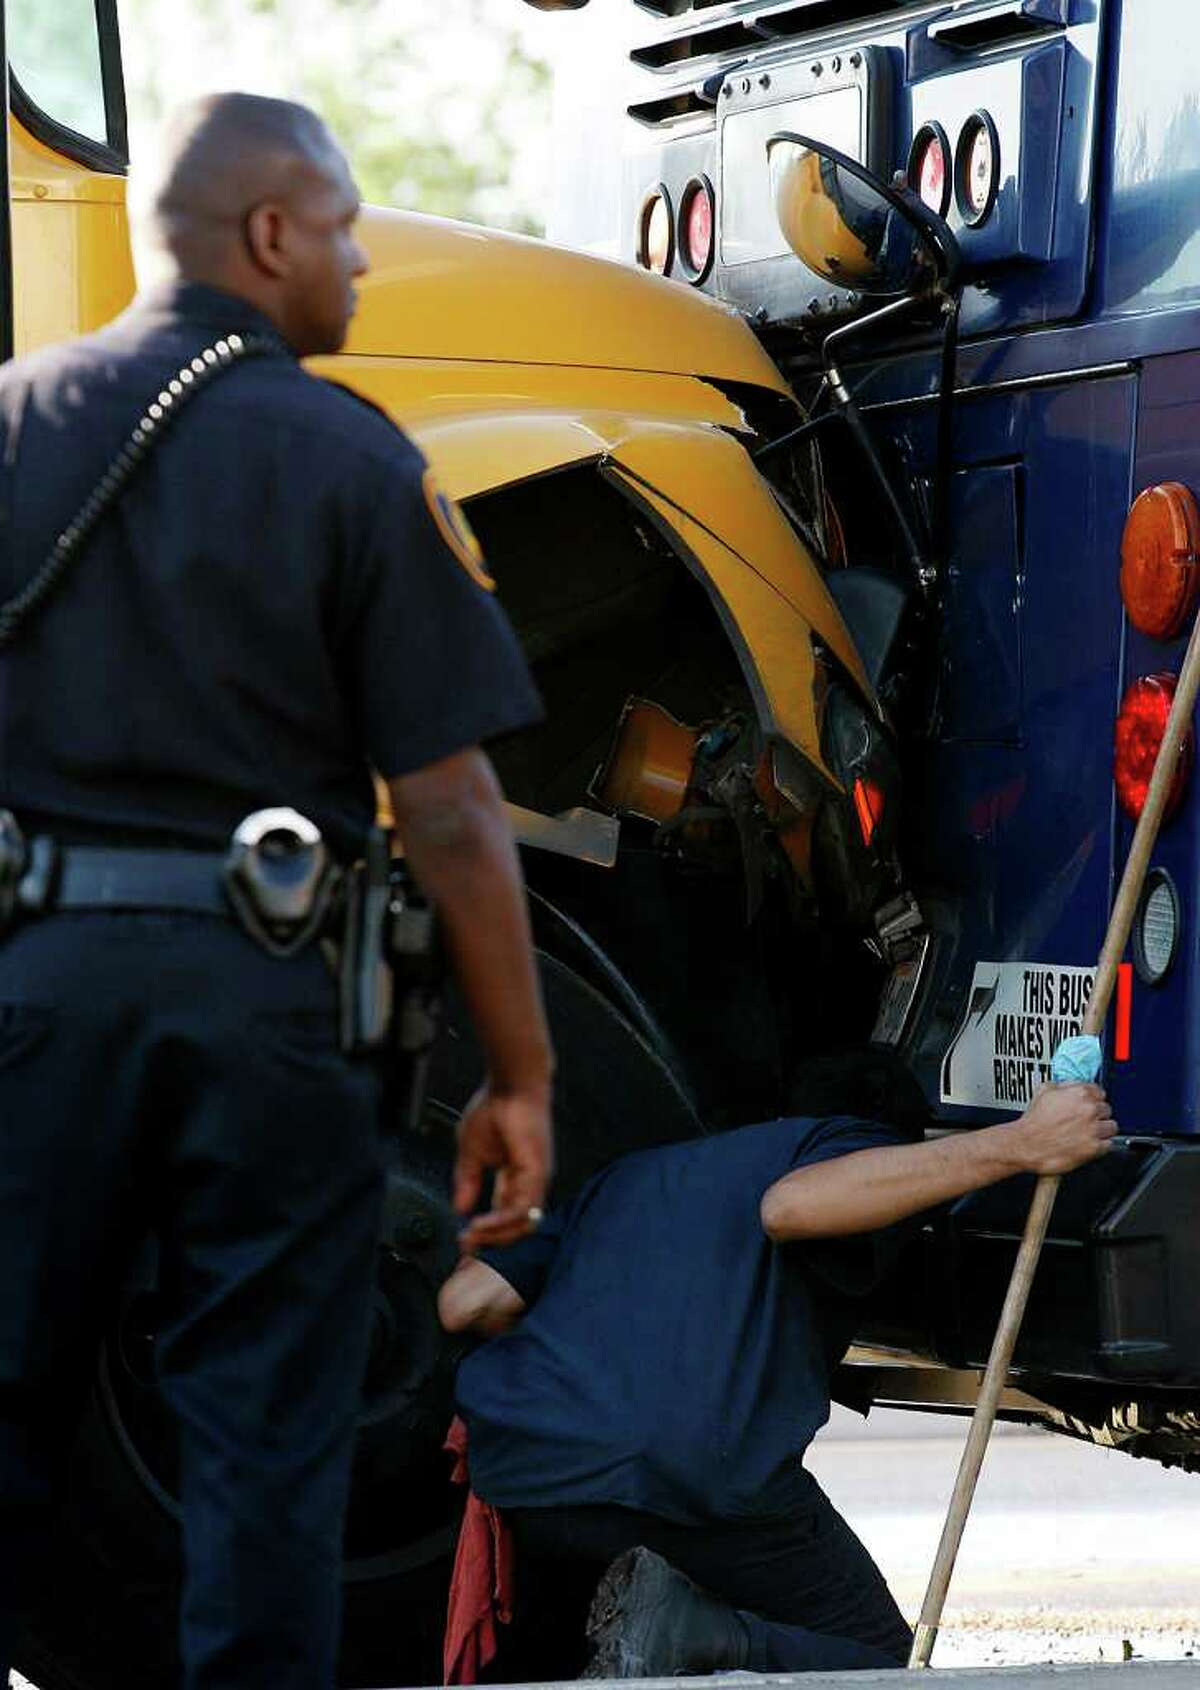 METRO -- A tow truck driver prepares to separate the vechicles at the scene of a two-bus accident along westbound access road of Northwest Loop 410 near Exchange Parkway, Tuesday, April 12, 2011. Nine people suffered injuries not thought to be life-threatening Tuesday morning, when an empty Northside Independent School District bus rear-ended a VIA Metropolitan Transit bus on the Northwest Side. The crash took place around 8 a.m. JERRY LARA/glara@express-news.net